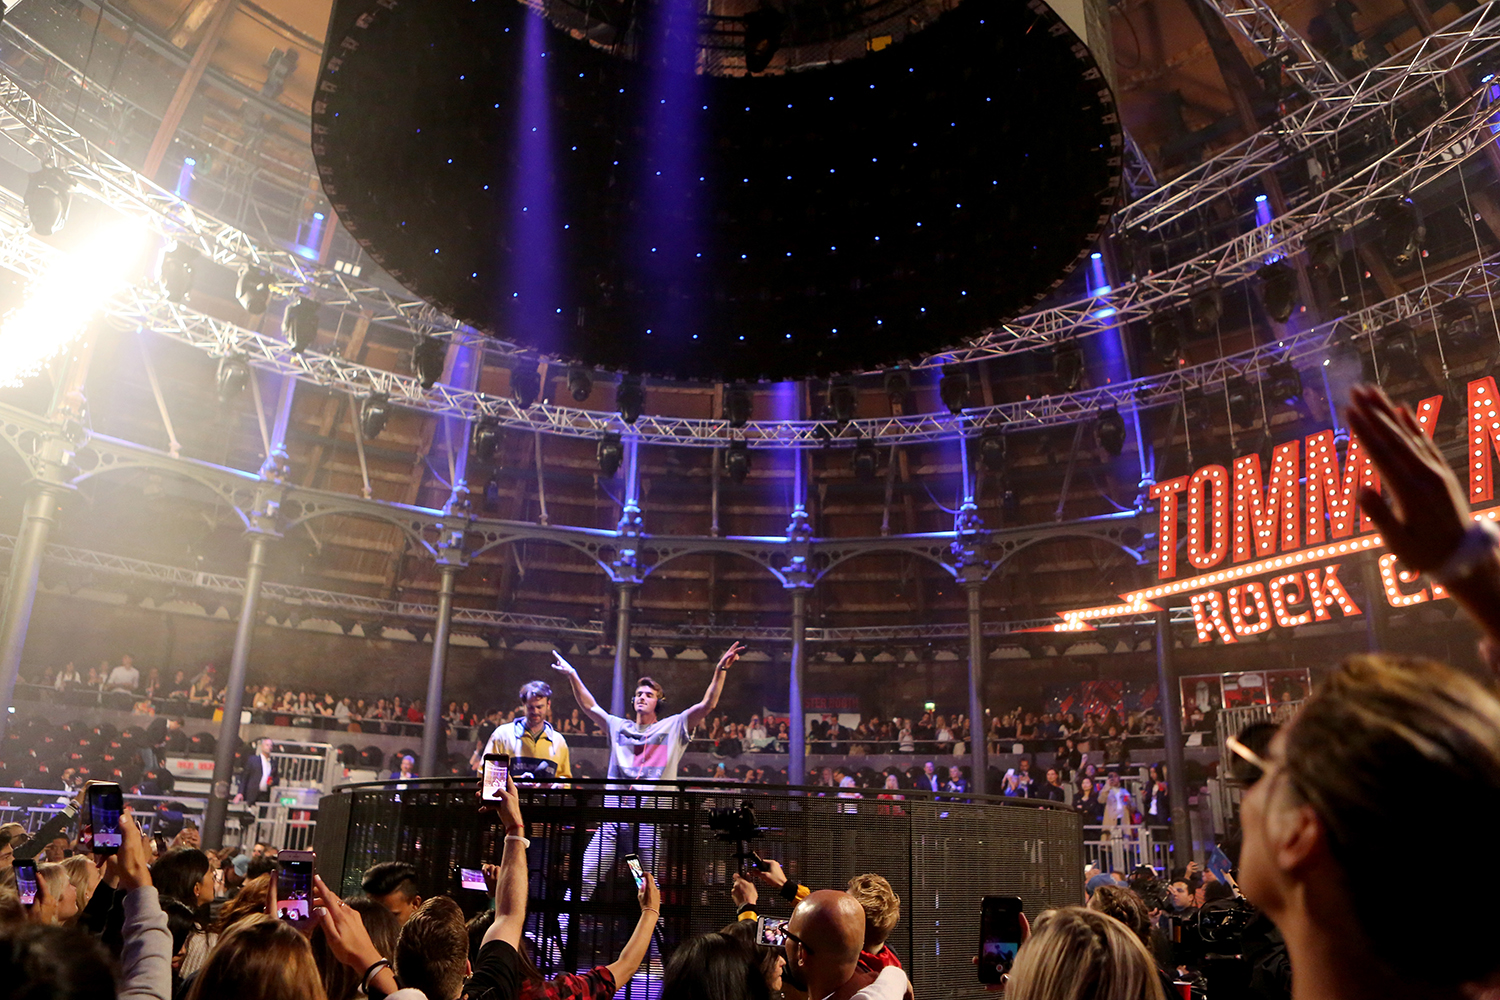 LONDON, ENGLAND - SEPTEMBER 19:  The Chainsmokers perform at the Tommy Hilfiger TOMMYNOW Fall 2017 Show during London Fashion Week September 2017 at the Roundhouse on September 19, 2017 in London, England.  (Photo by David M. Benett/Dave Benett/Getty Imag